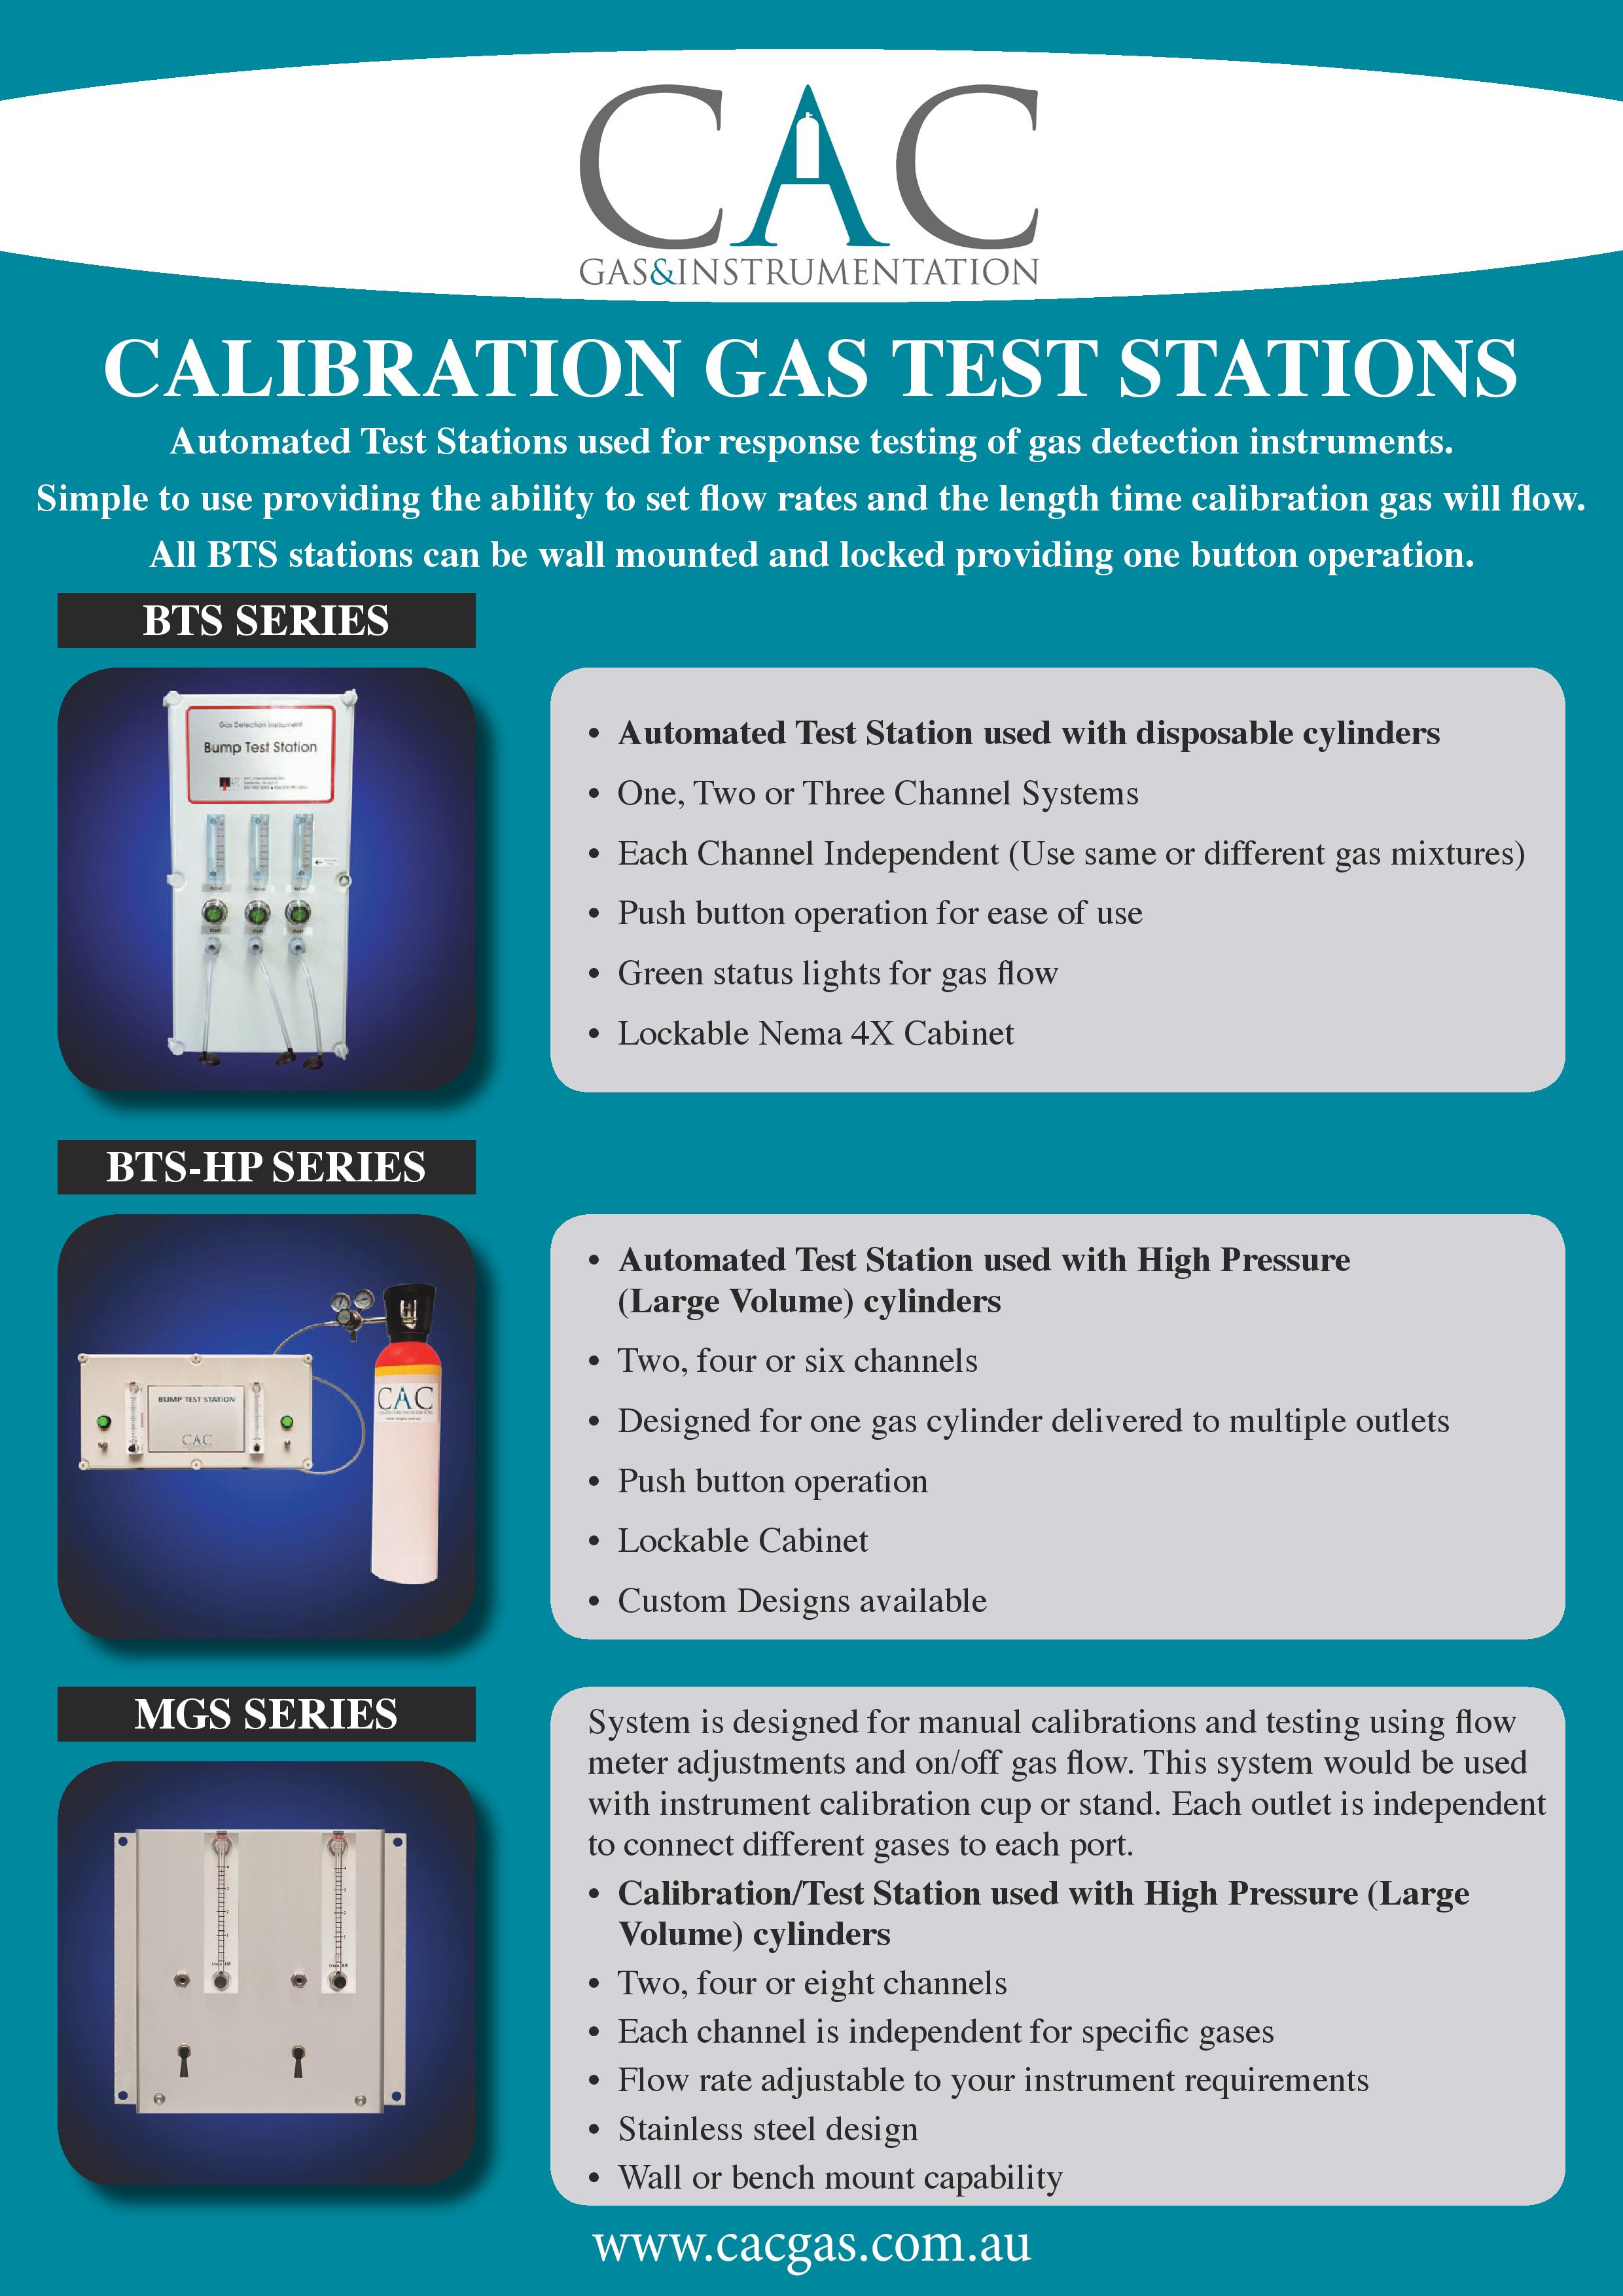 CAC_Gas_TestStations-page-001.jpg